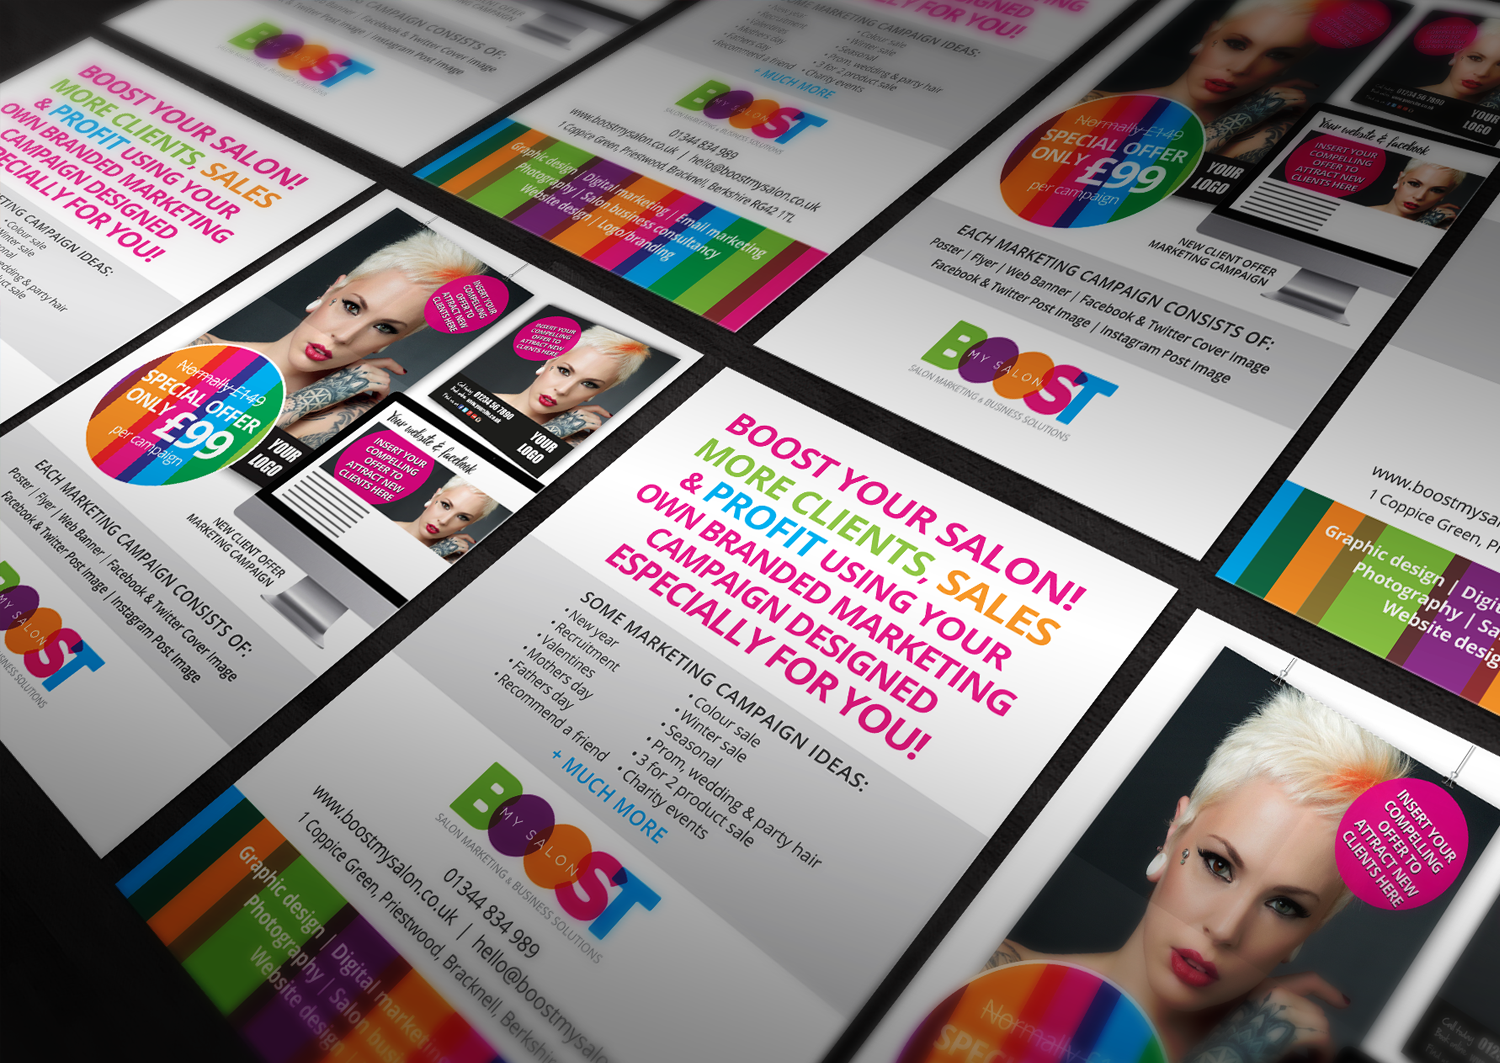 A6 Promotional Leaflet for BOOSTmySALON